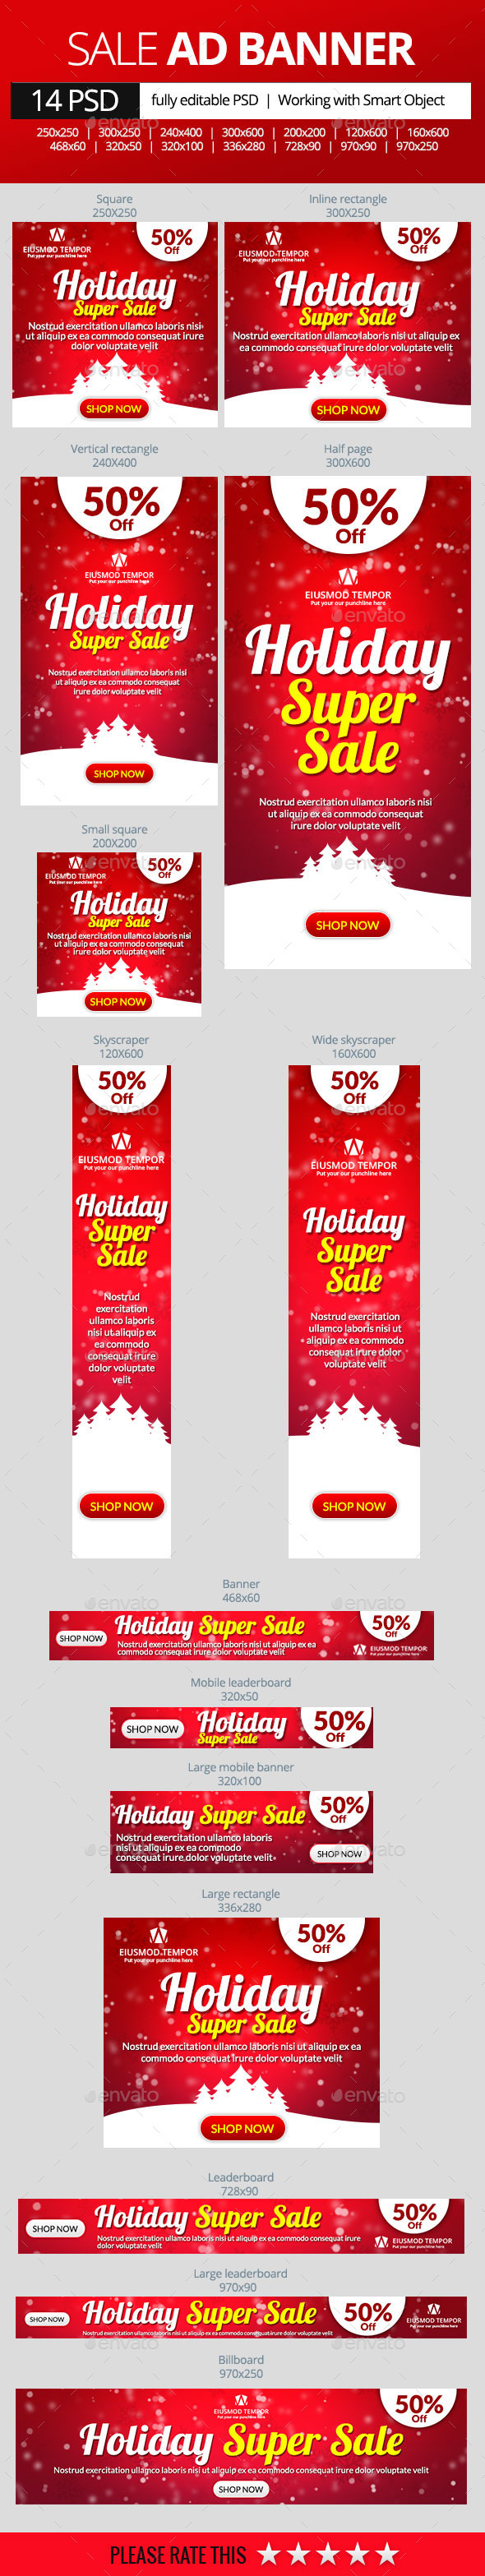 Holiday Super Sale Banners - Banners & Ads Web Elements